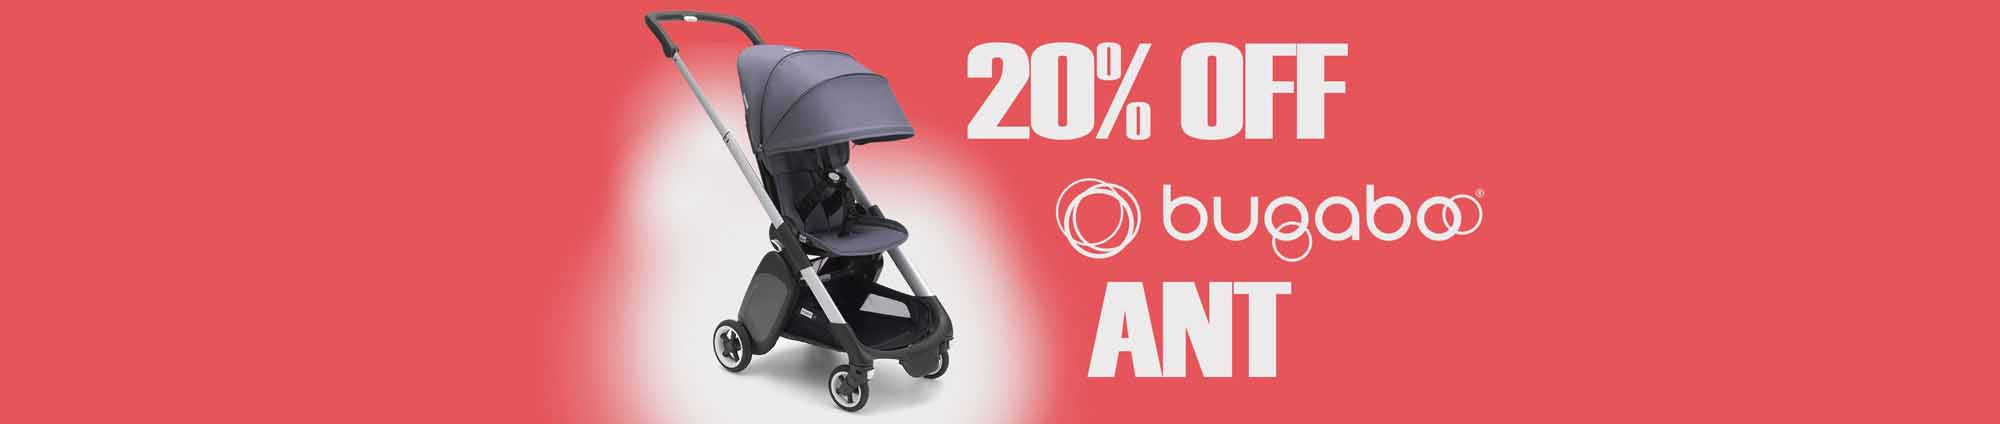 Bugaboo ANT 20 off